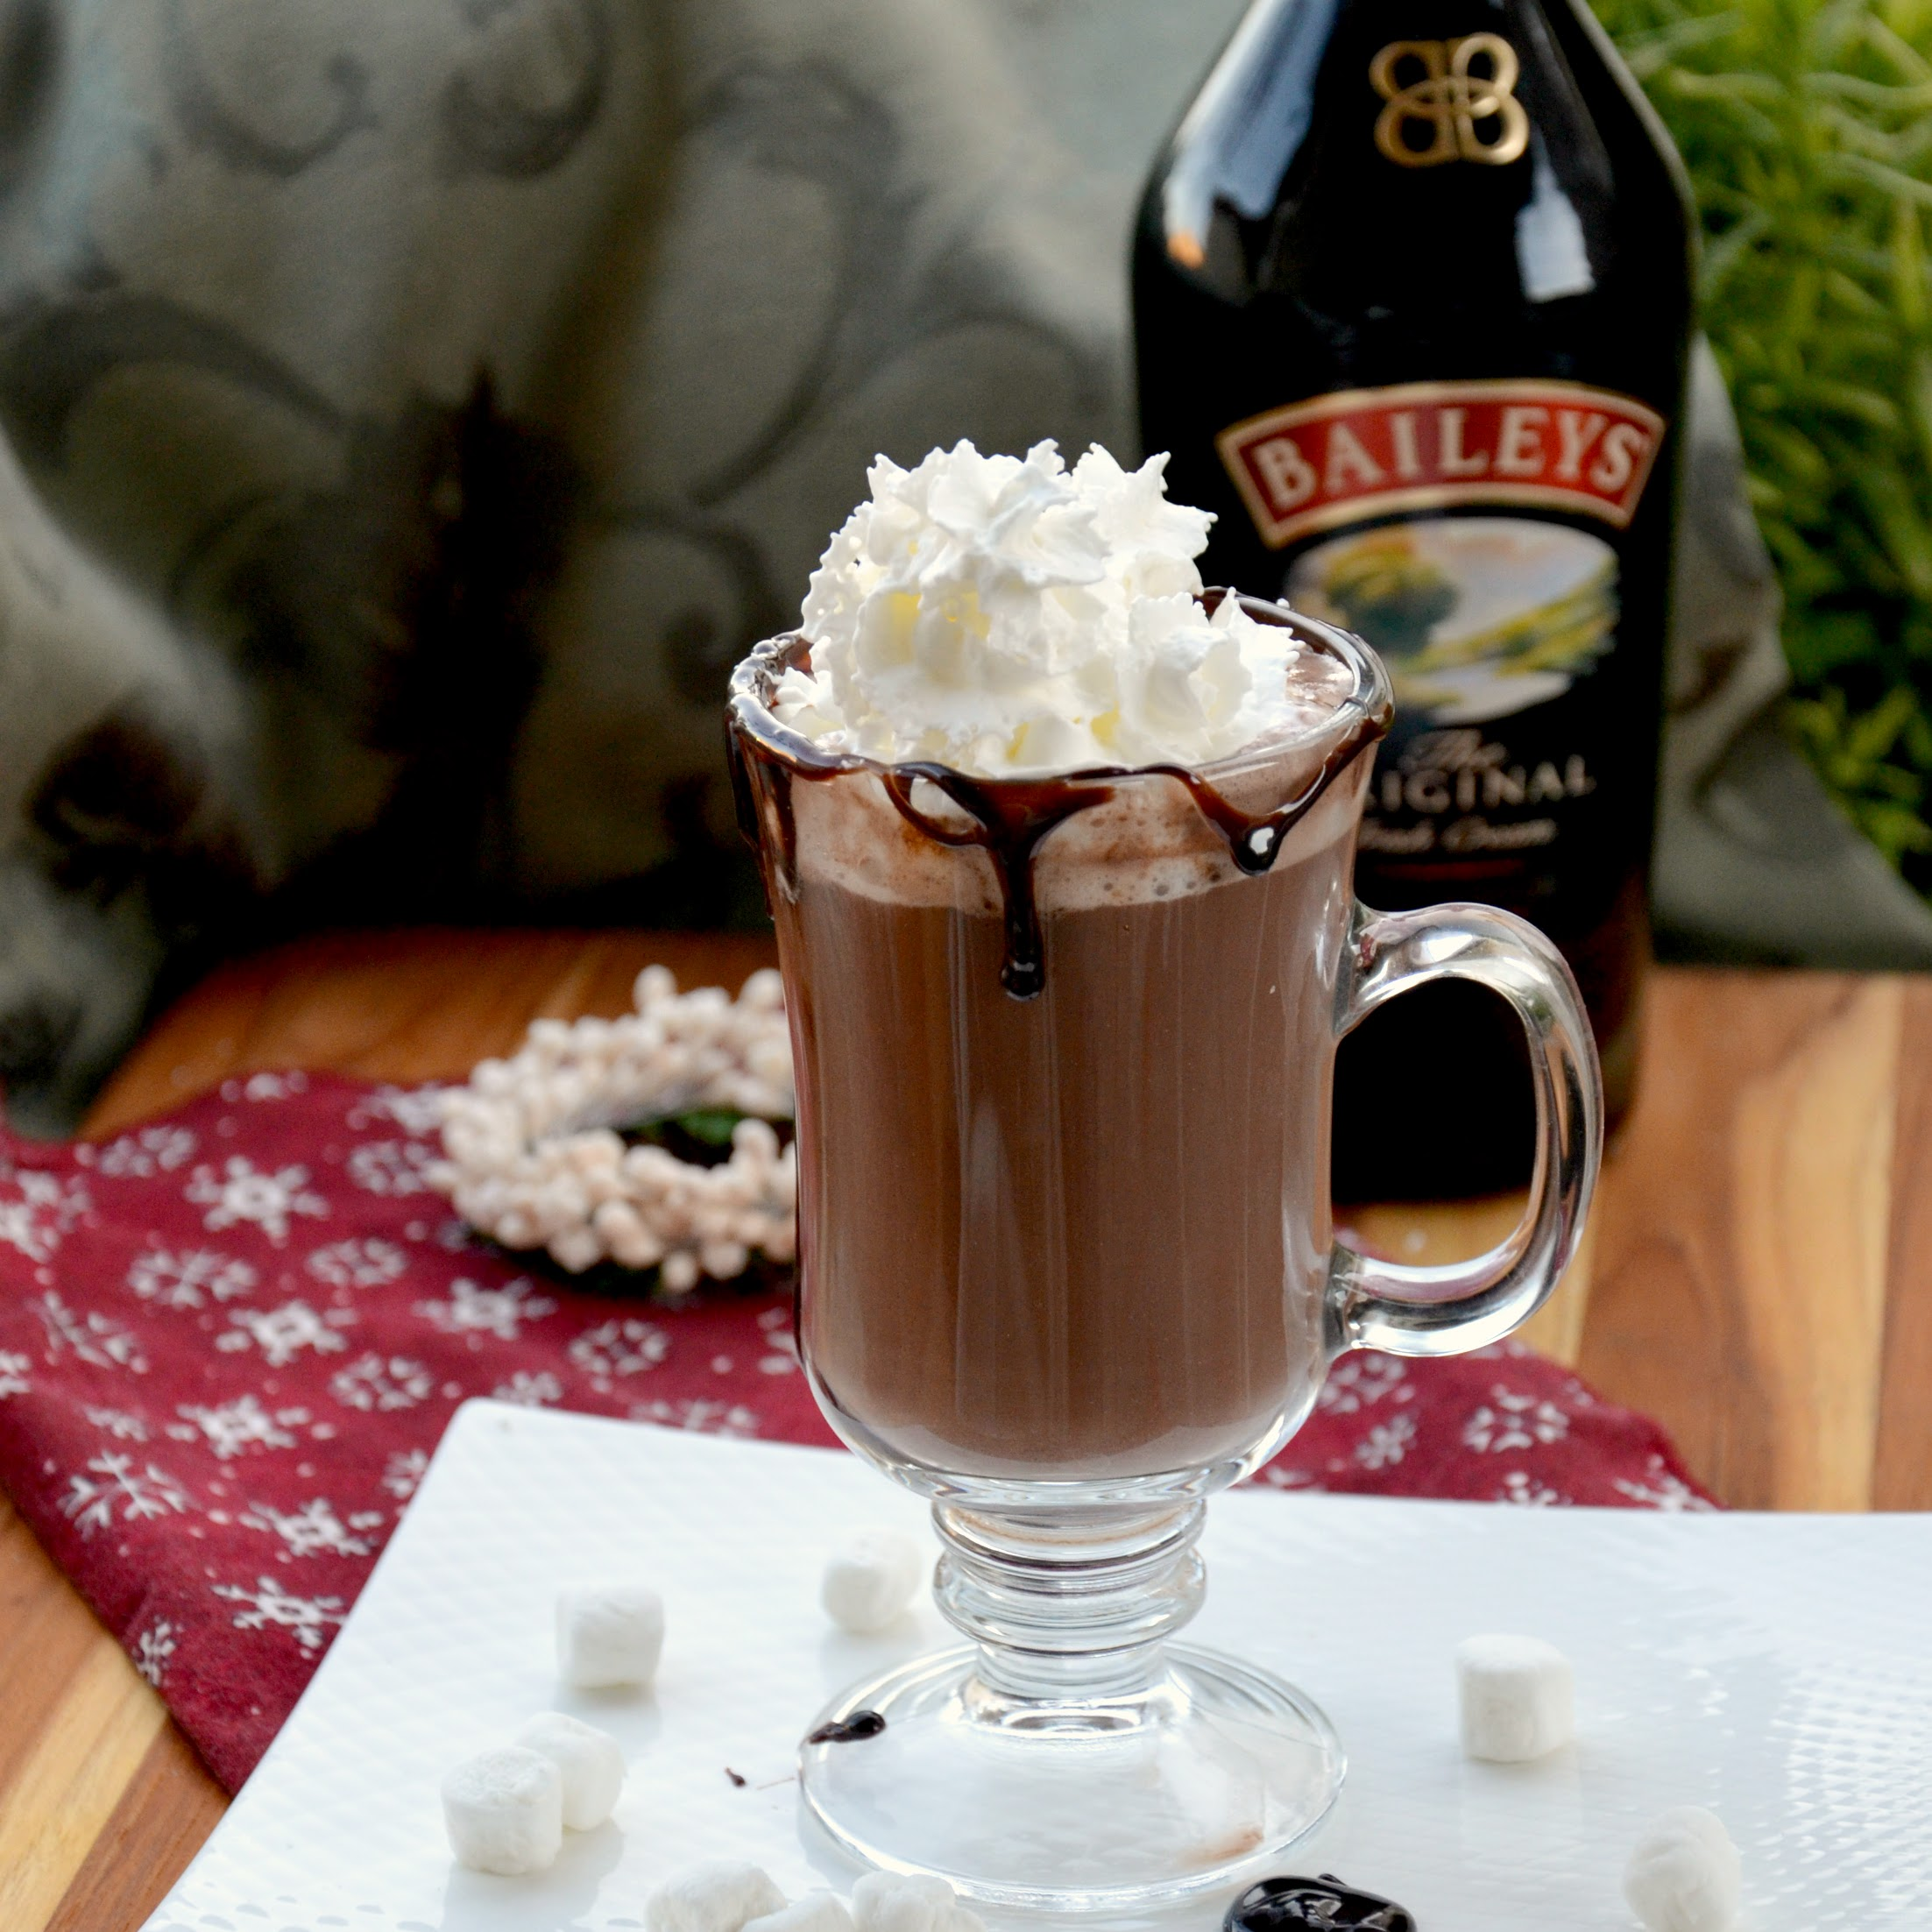 Baileys Hot Chocolate Allrecipes